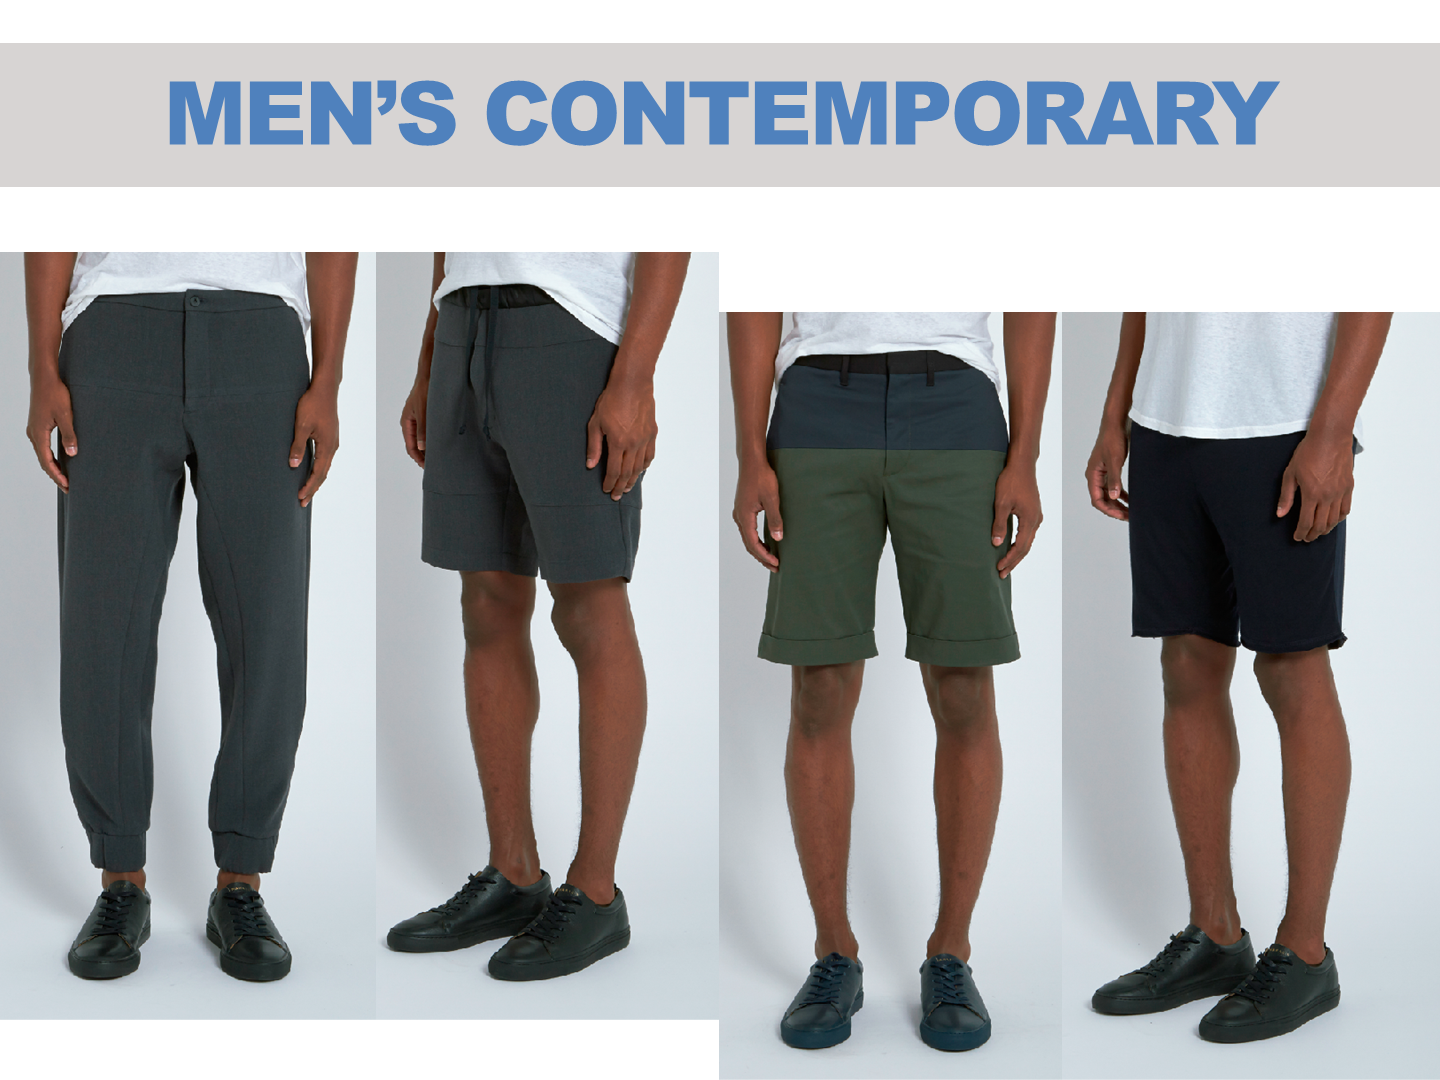 HUMAN B CLIENT Presentation - Men's Contemporary 3.png